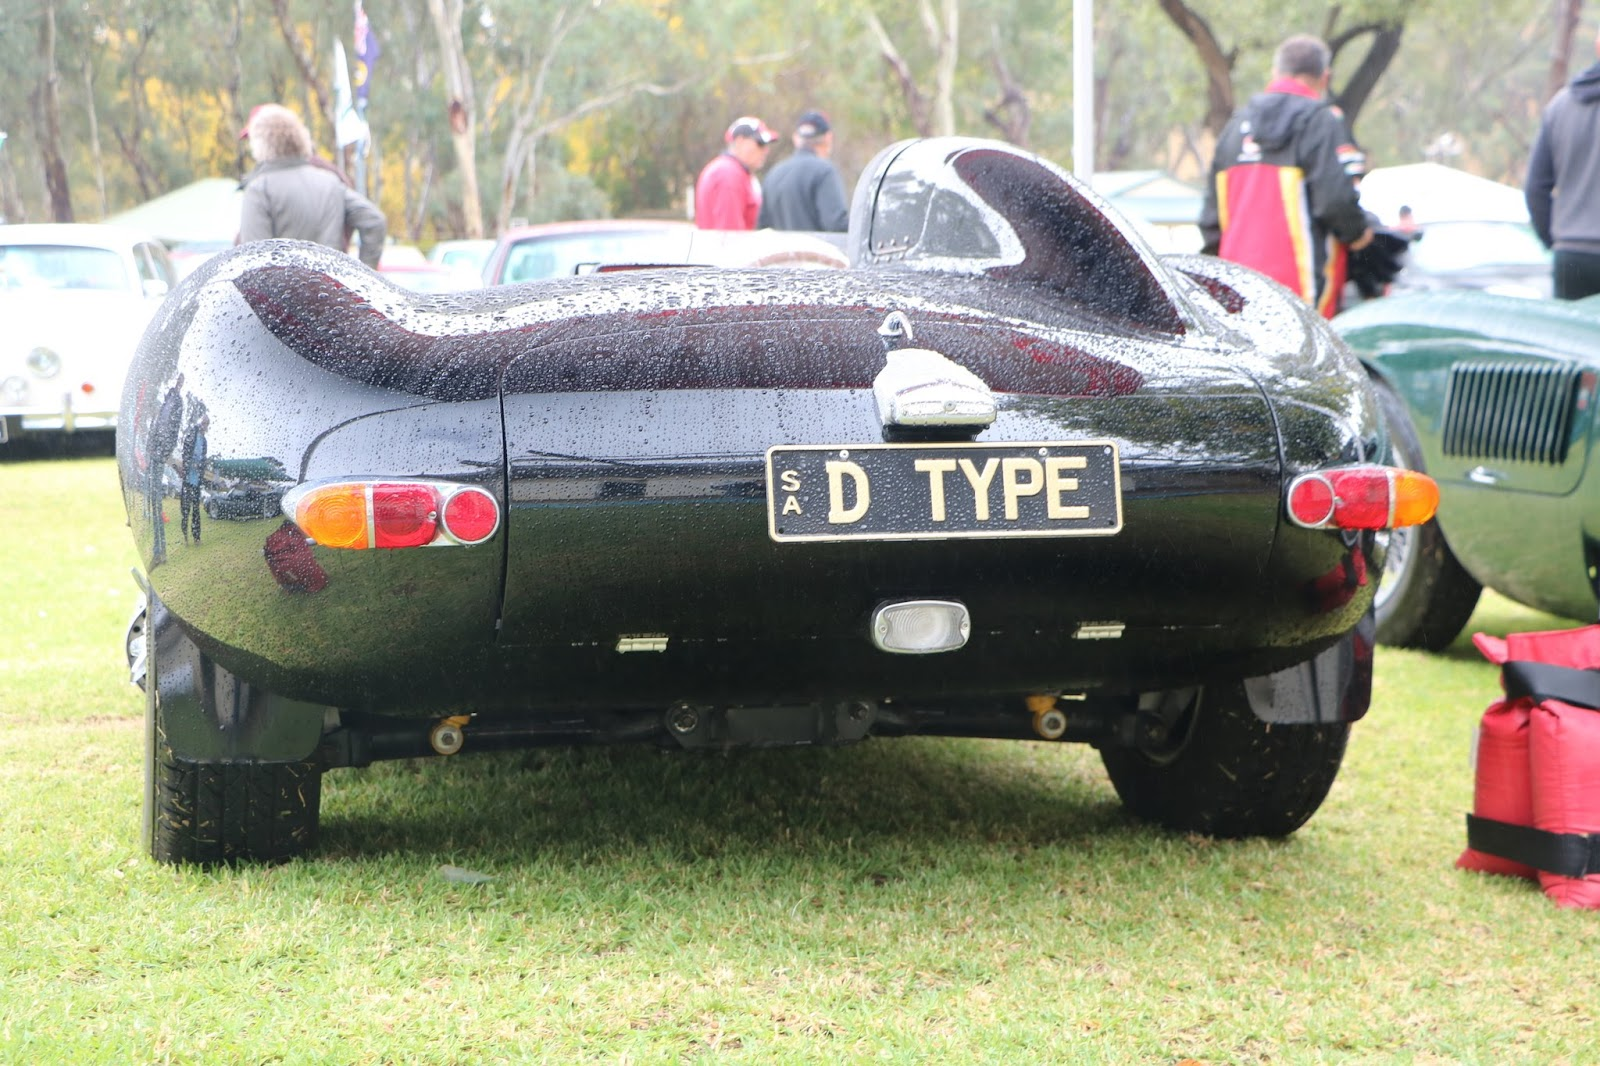 Jaguar_National_Rally_2018-04-14_0049 - D-Type Replica.JPG